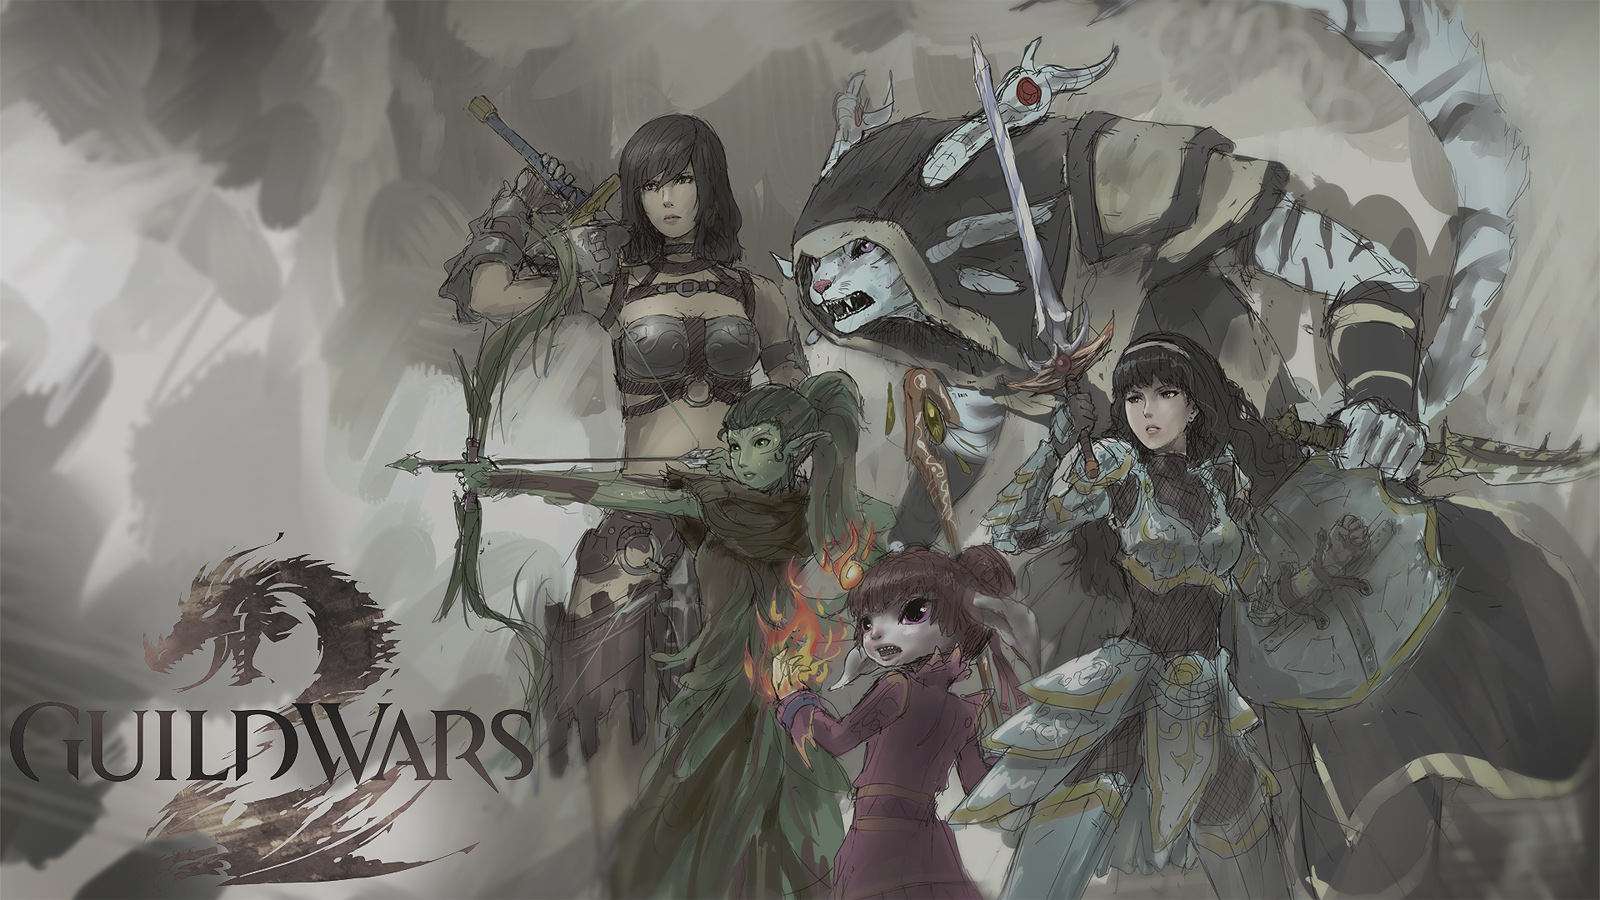 Guild Wars 2 by Yytru